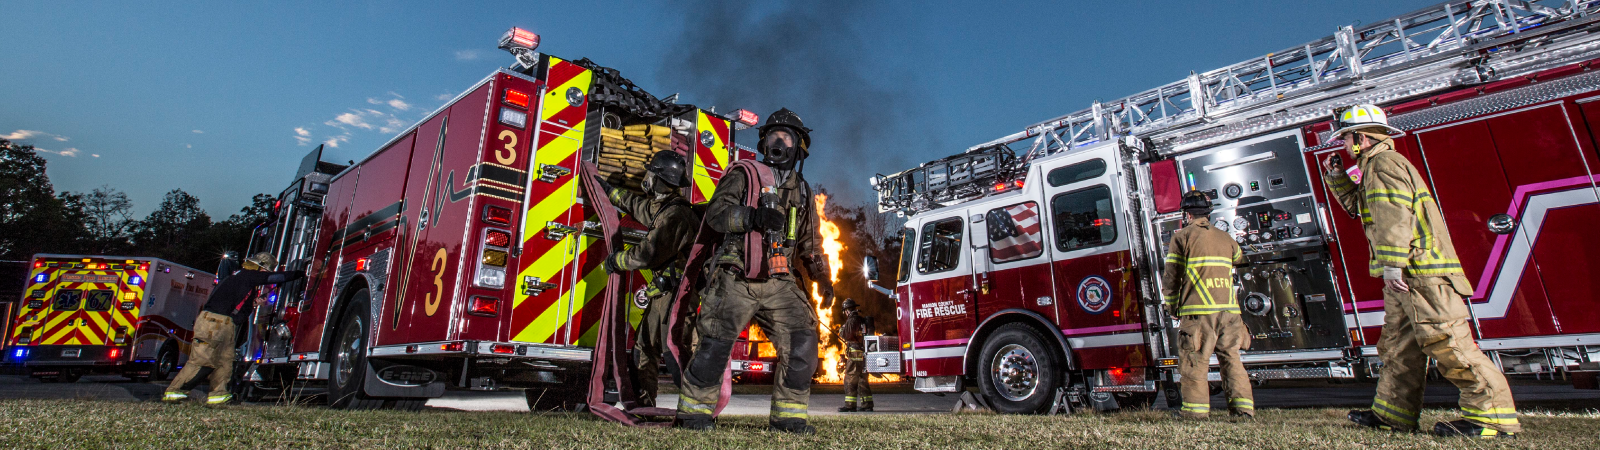 Fire + Emergency - Header Image